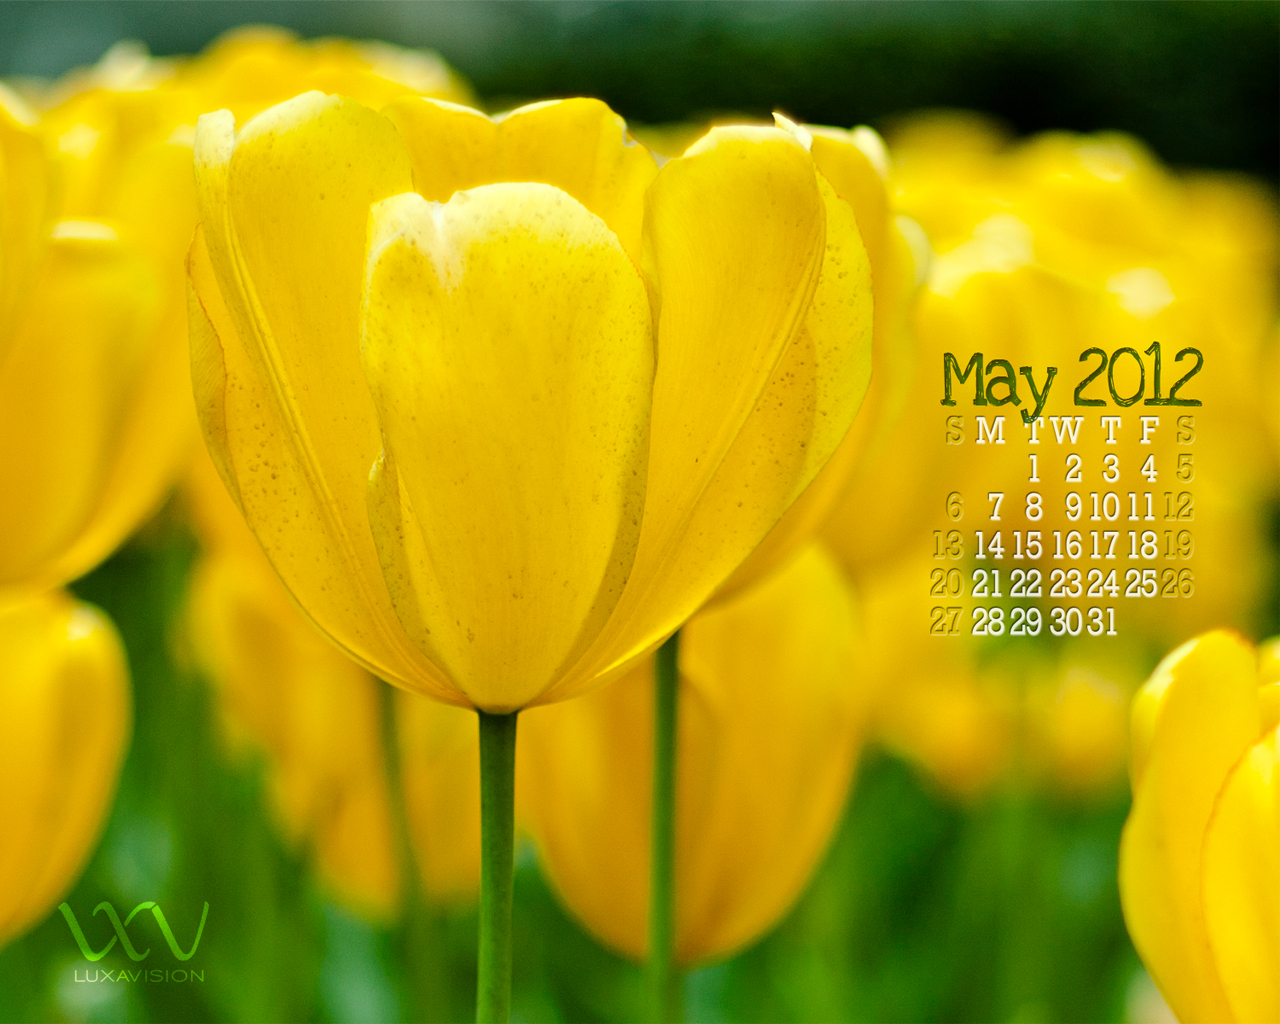 Desktop Calendar for May 2012 - Yellow Tulips Macro 1280x1024